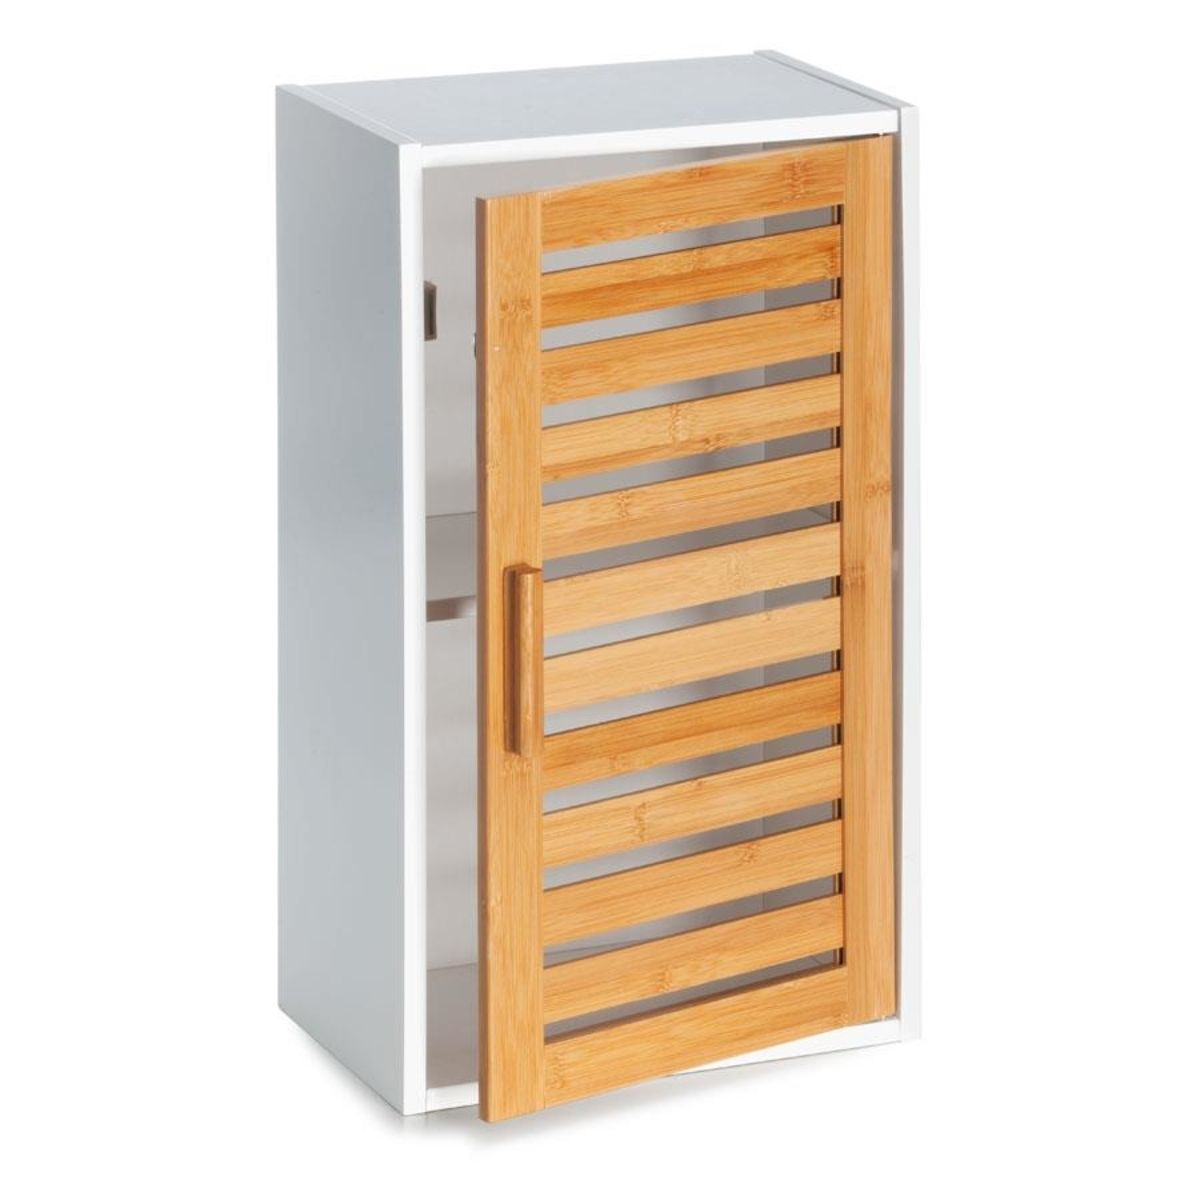 Delicieux Bamboo Bathroom Cabinet With Adjustable Shelf